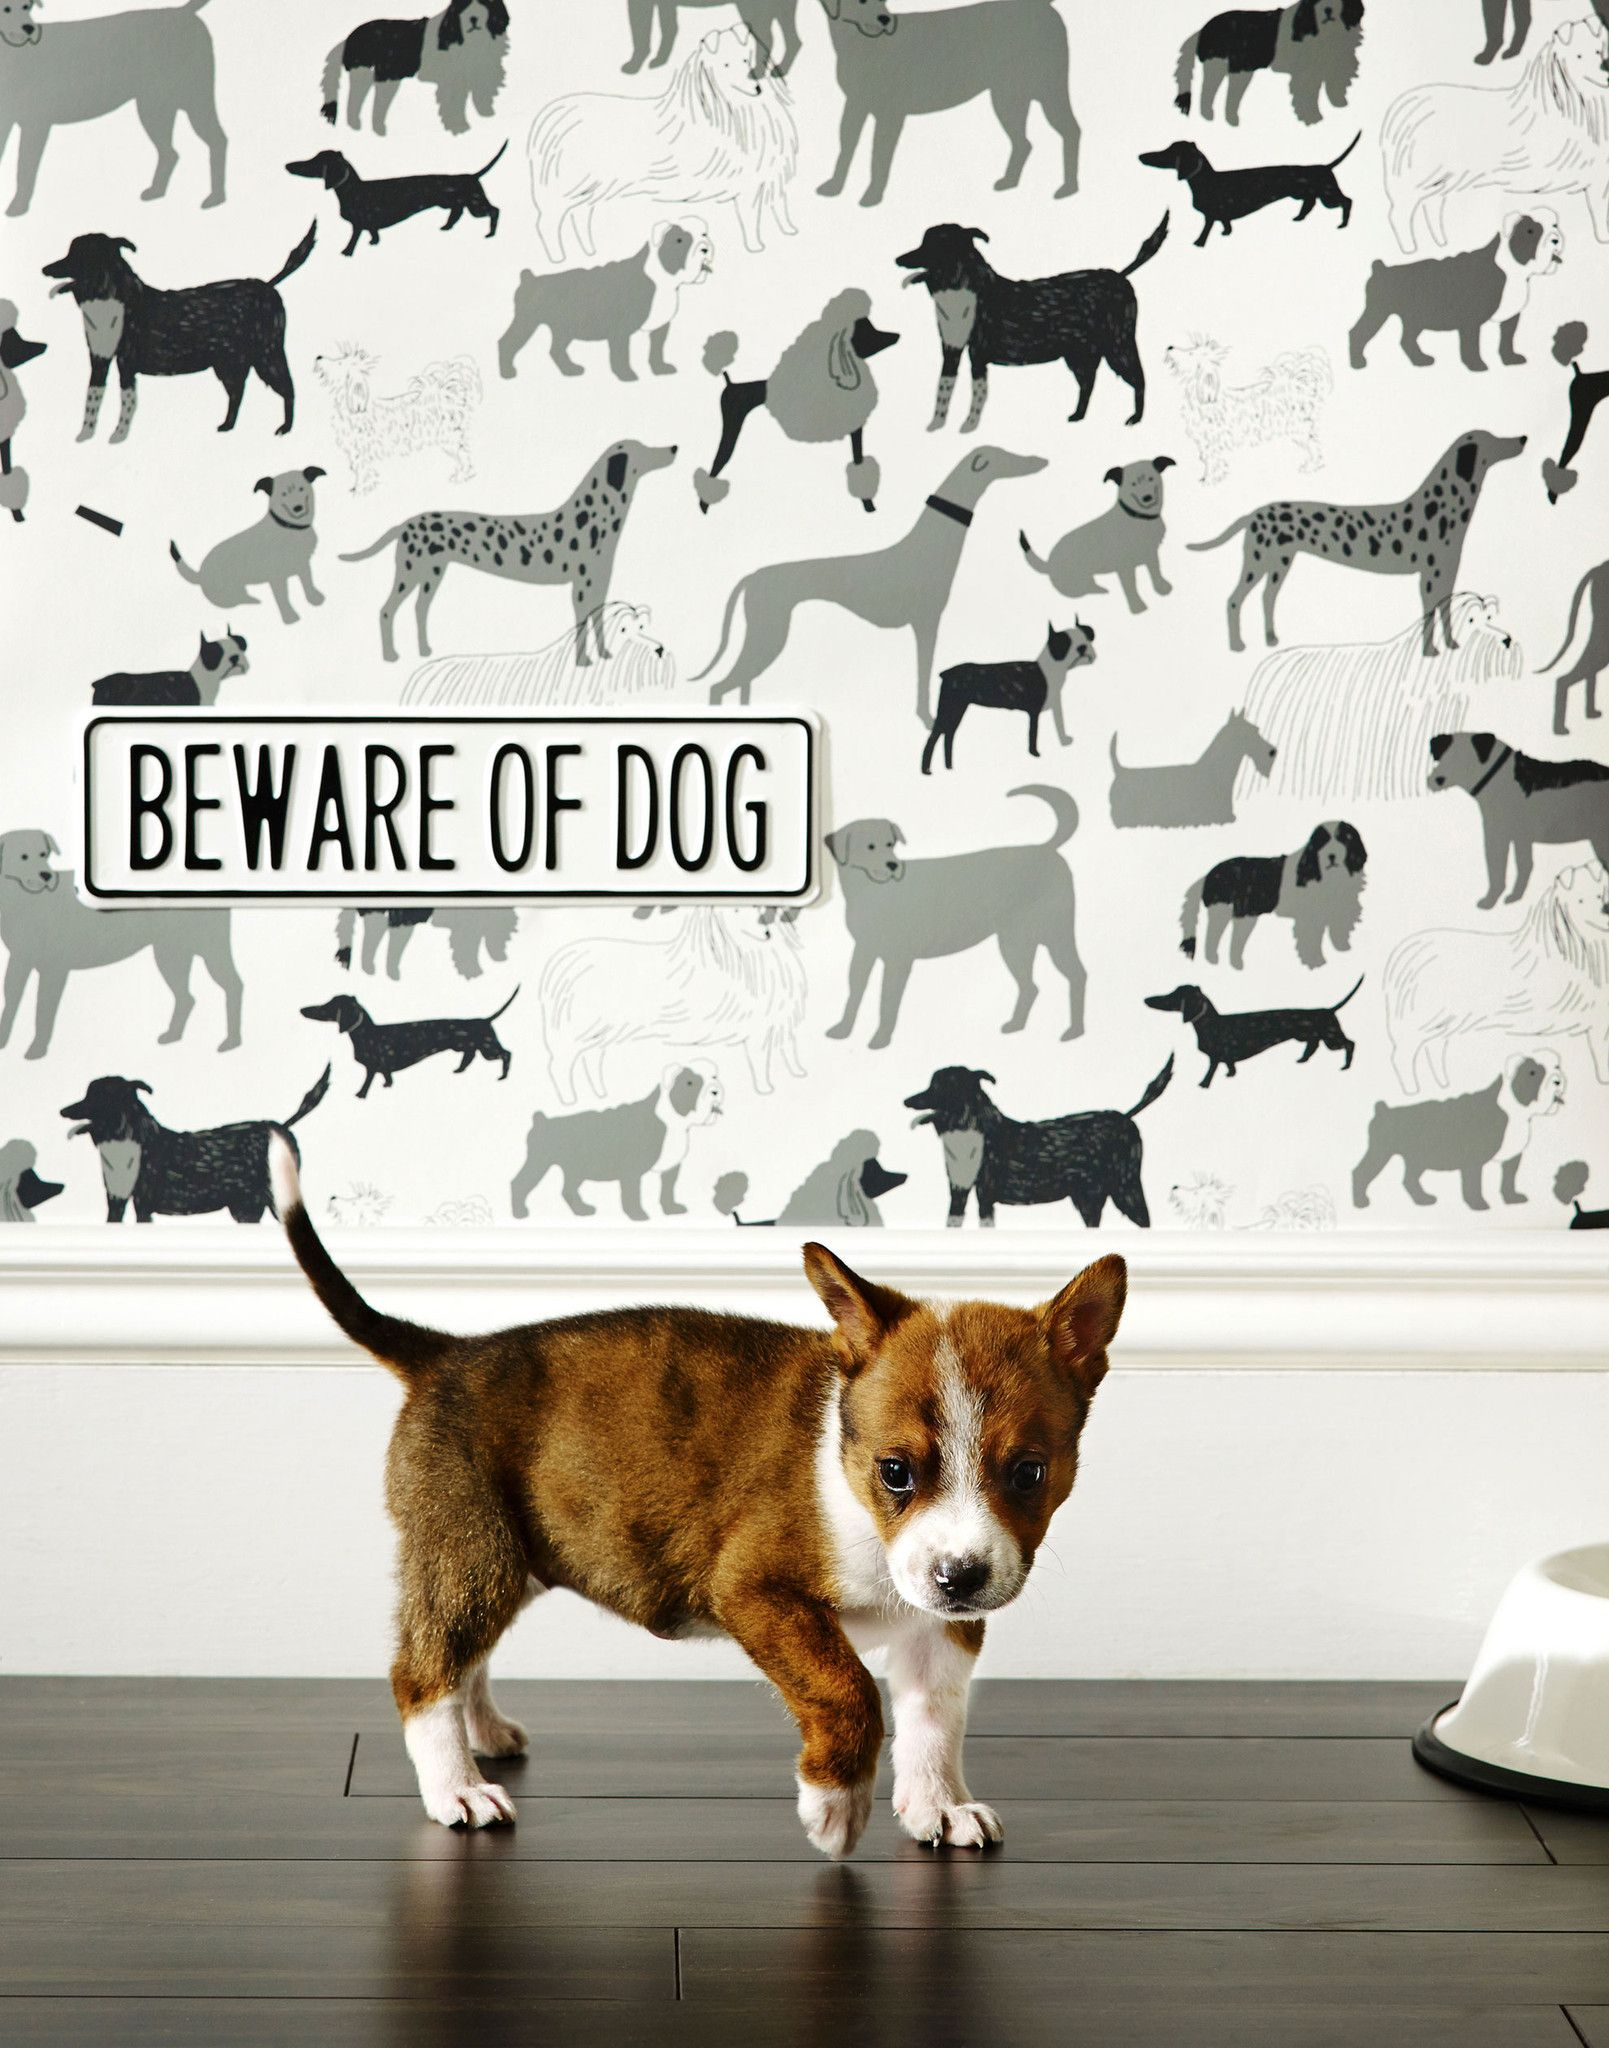 Dog Park Wallpaper by Julia Rothman ~ Clever dog themed wallpaper is screen printed by hand | Hygge & West